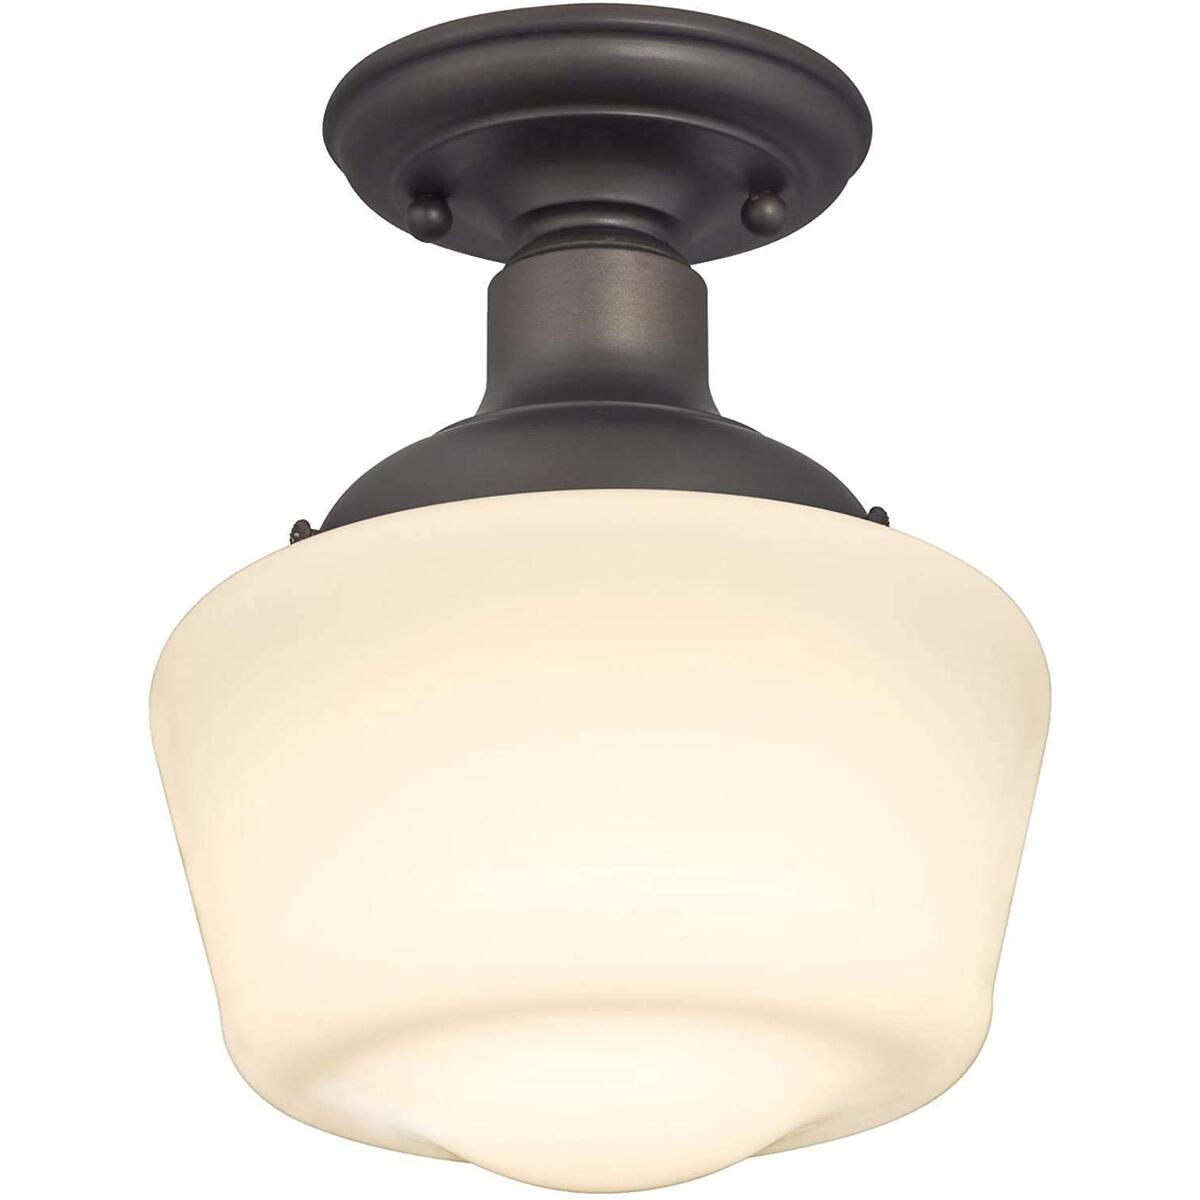 One Light Indoor Semi-Flush Ceiling Fixture with Oil Rubbed Bronze Finish and White Opal Glass